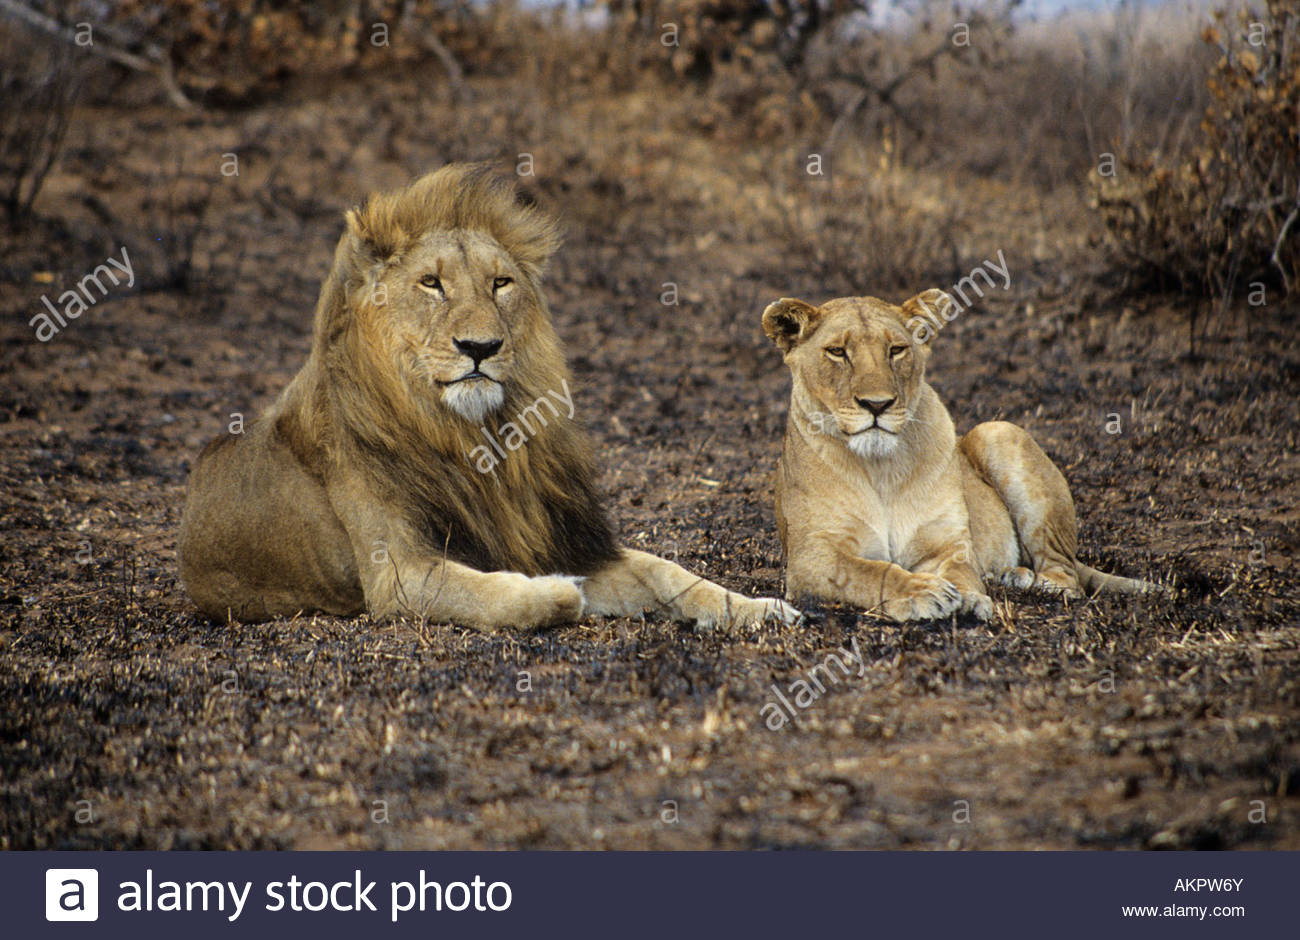 Lion and lioness - Stock Image